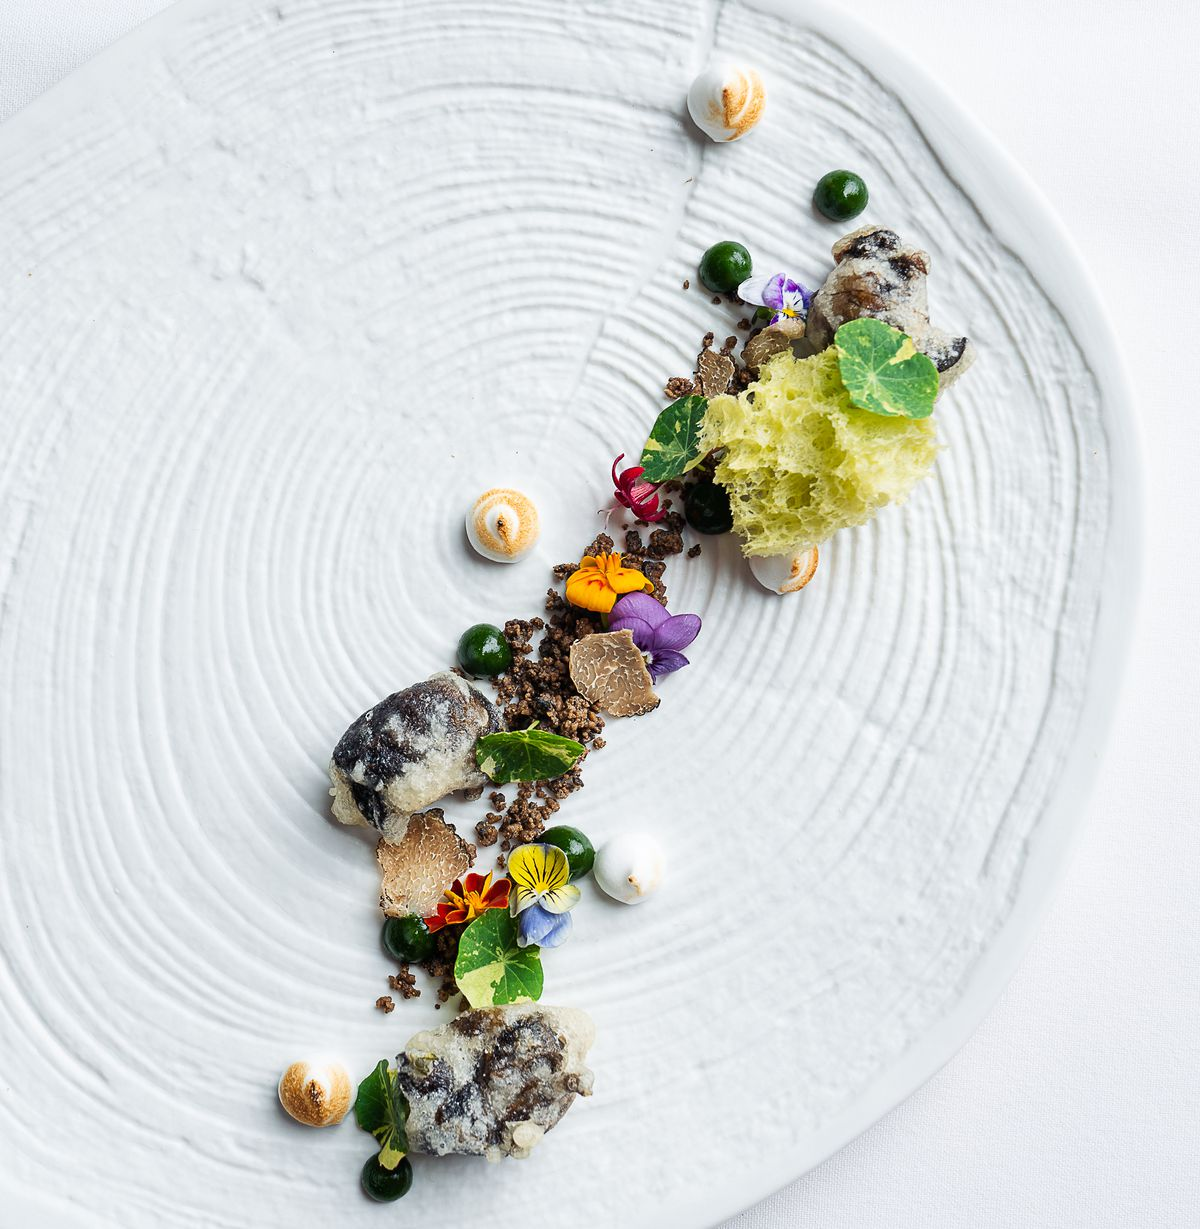 a dish with snails, flowers, and moss